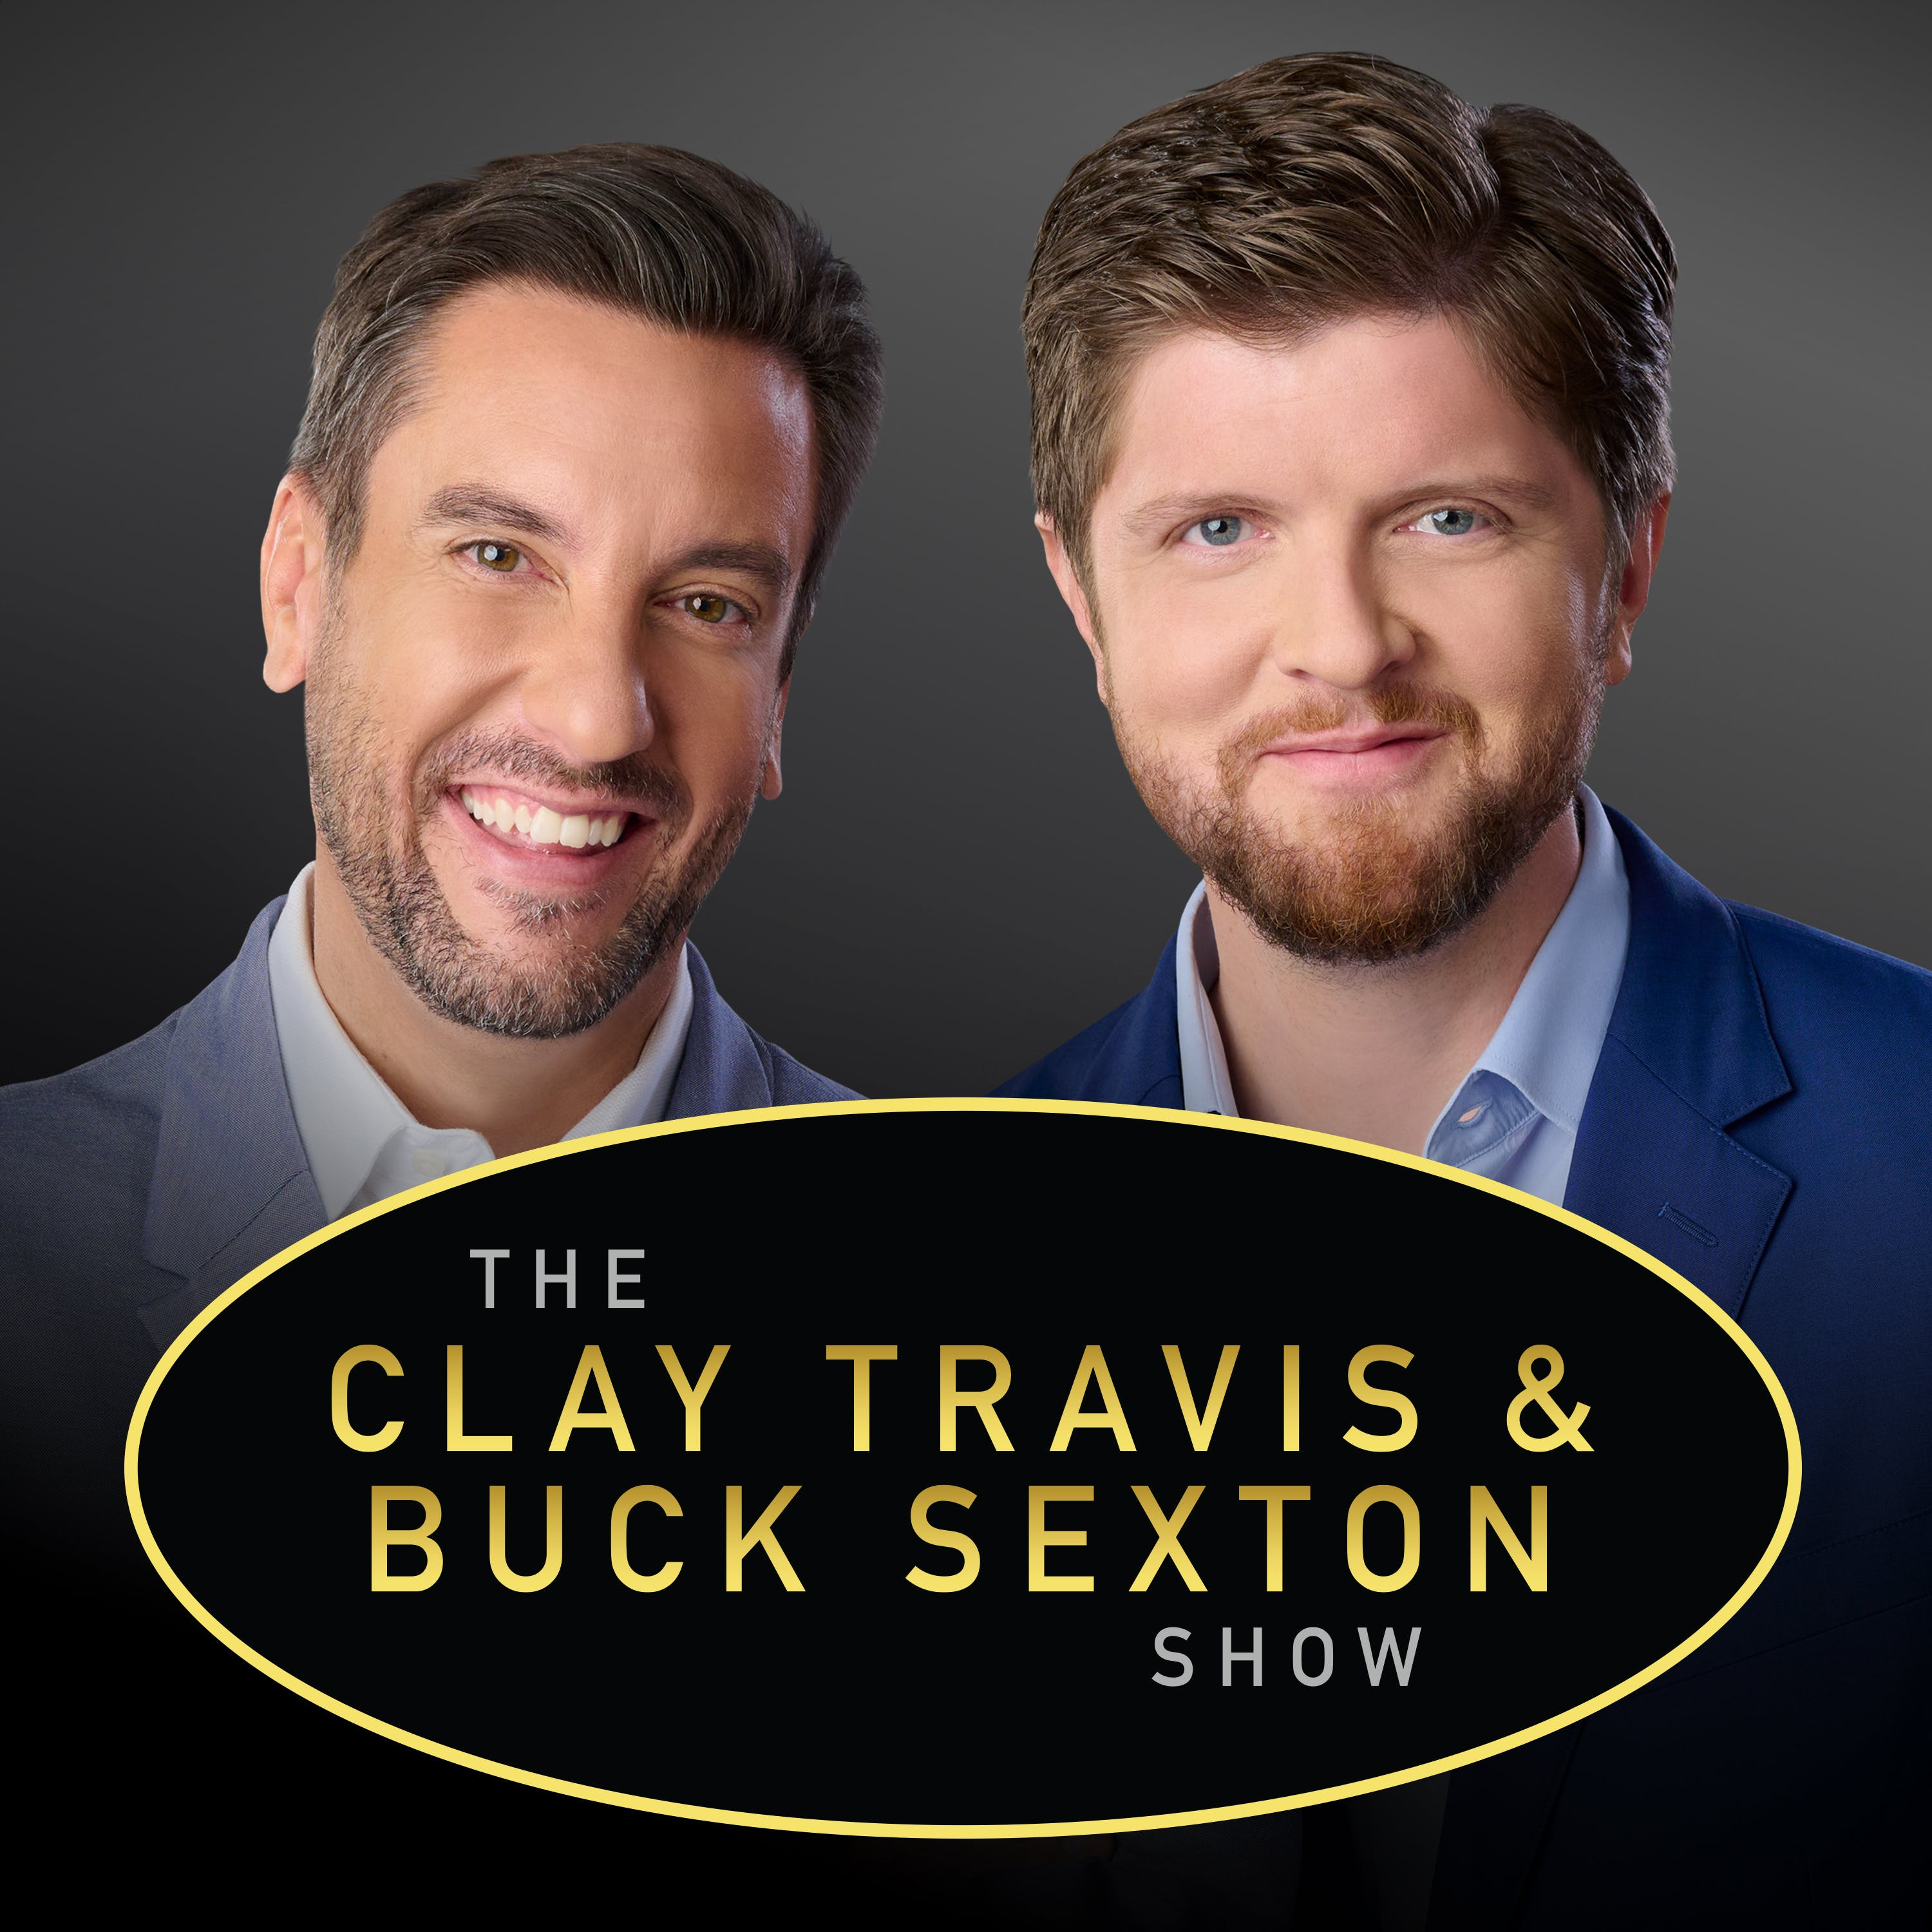 Clay Travis and Buck Sexton Show H2 - Sep 20 2021